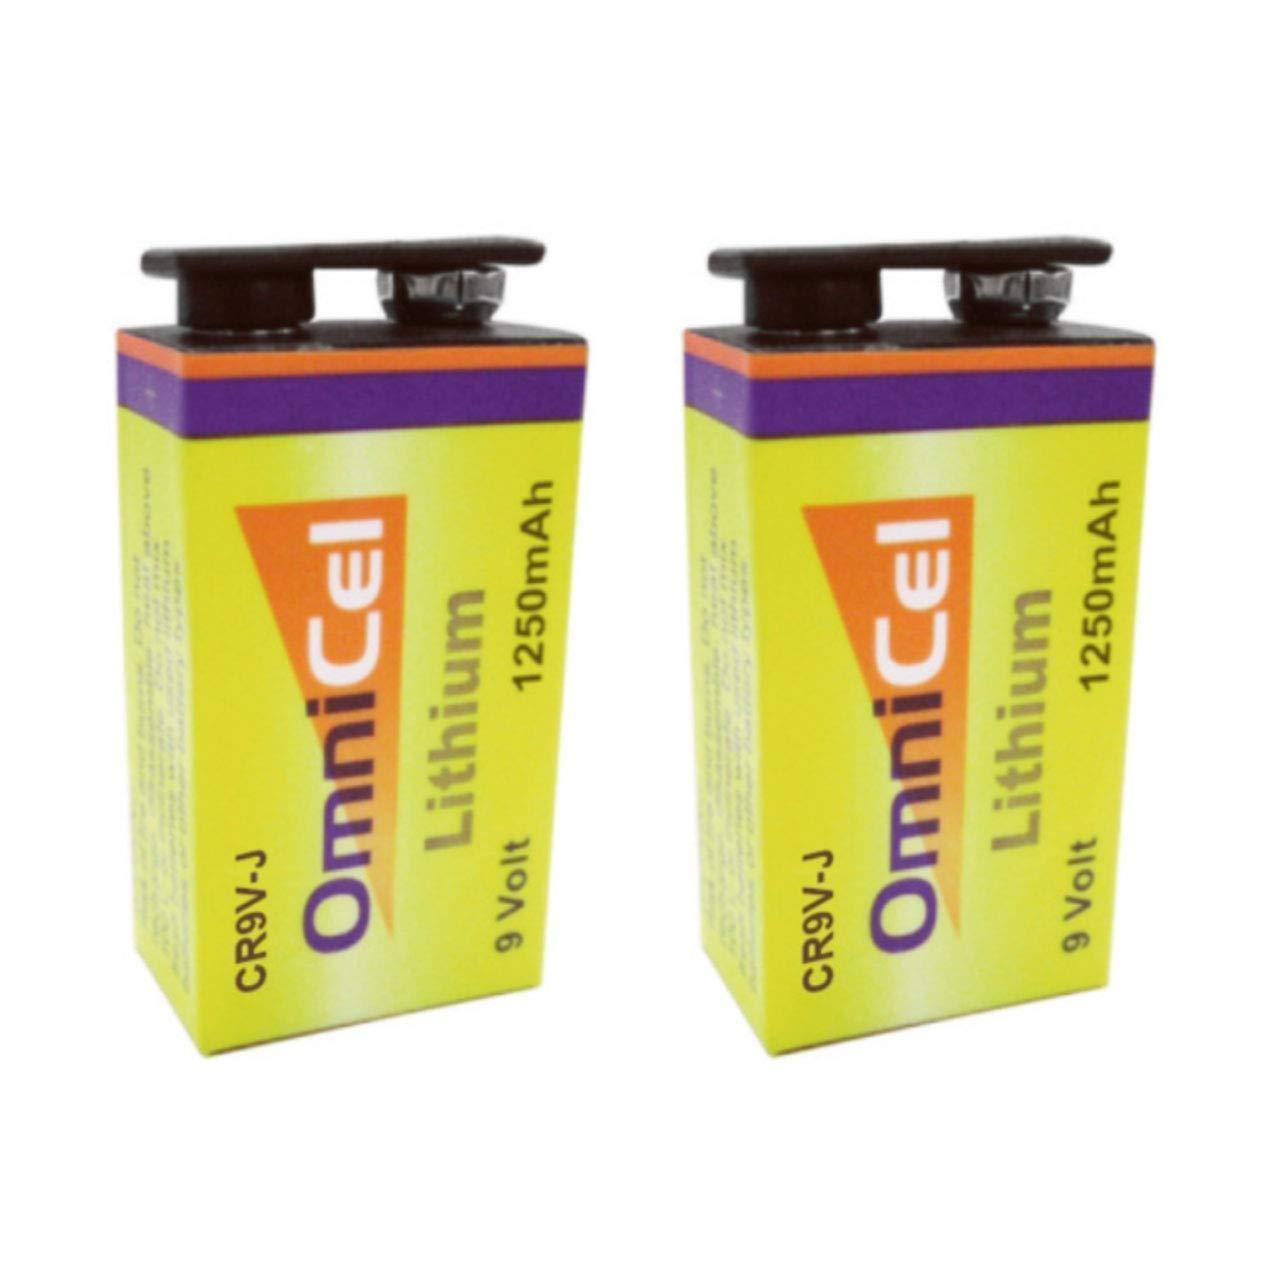 2pcs OmniCel CR9V-J 9V 1250mAh Lithium Battery w/Snap Connector FAST USA SHIP